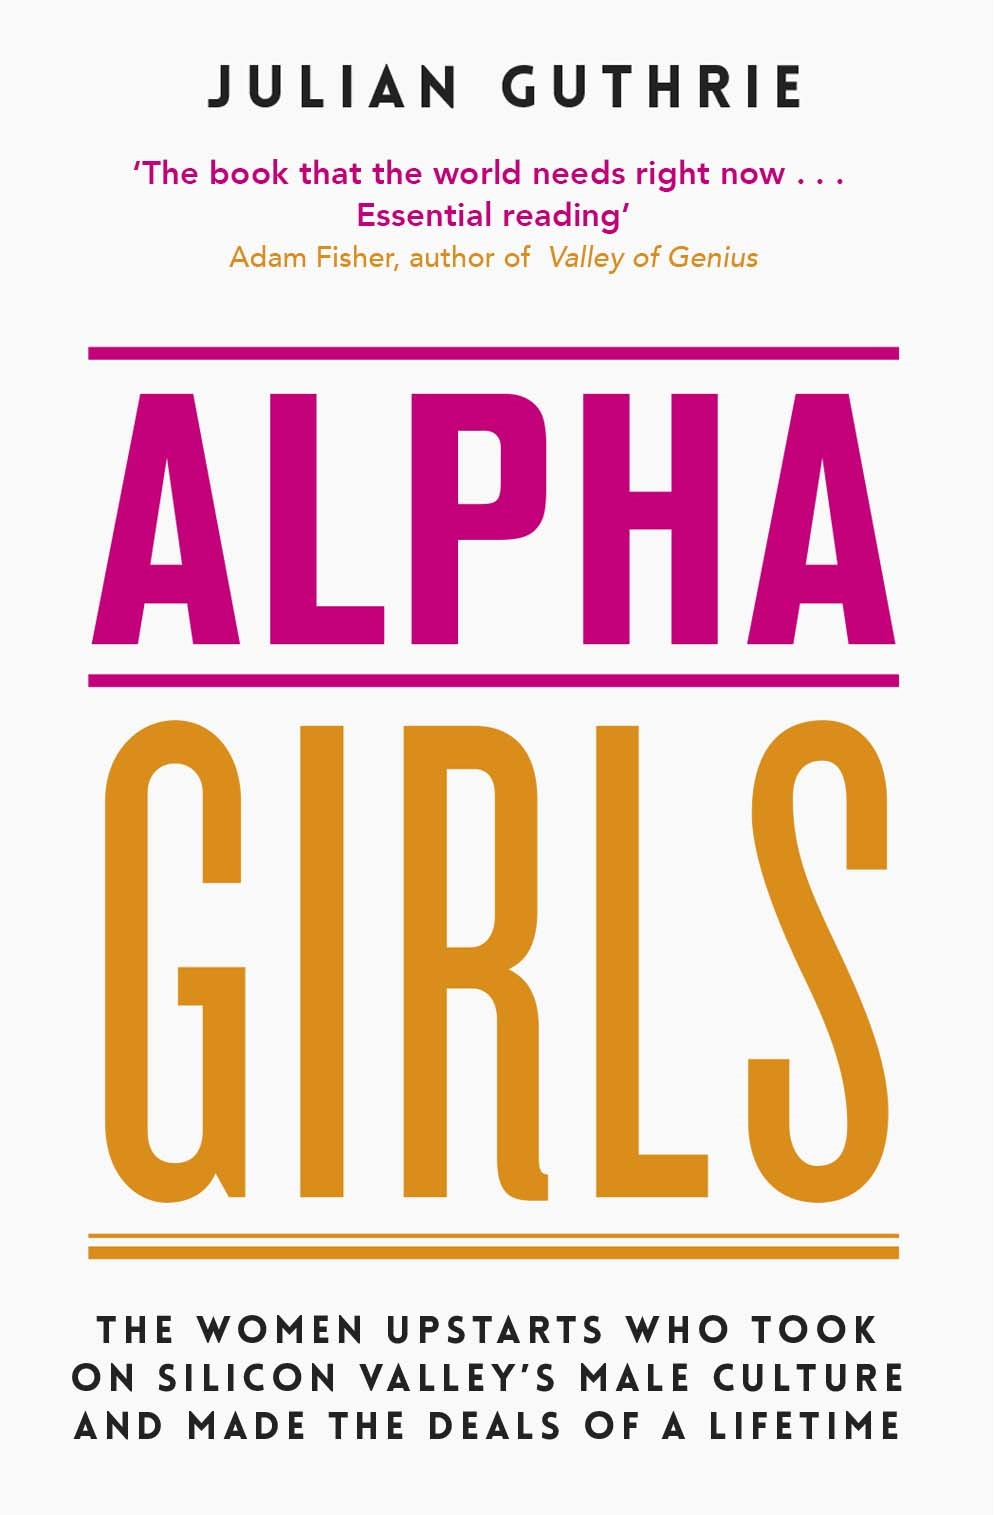 BOOK :  Alpha Girls, Julian Guthrie   Silicon Valley has long been at the forefront of innovation, but it is renowned for its archaic sexist culture.  Alpha Girls  by  Julian Guthries  is the unforgettable story how a group of talented women achieved success in a tech world run by 'bro-grammers' through sheer grit and determination. Despite the instrumental role they played in building some of the foremost companies of our time, these women have been written out of history - until now. Magdalena Yesil, Mary Jane Elmore, Theresia Gouw and Sonja Hoel juggled work and family and shaped the tech landscape we know today all while overcoming unequal pay, actual punches, betrayals and the sexist attitudes prevalent in Silicon Valley. Despite the setbacks, they would rise again to rewrite the rules for an industry they love. If you enjoyed Lean In, the Social Network and Hidden Figures then you absolutely MUST pick up a copy of Alpha Girls.   Facebook  |  Instagram  |  Twitter